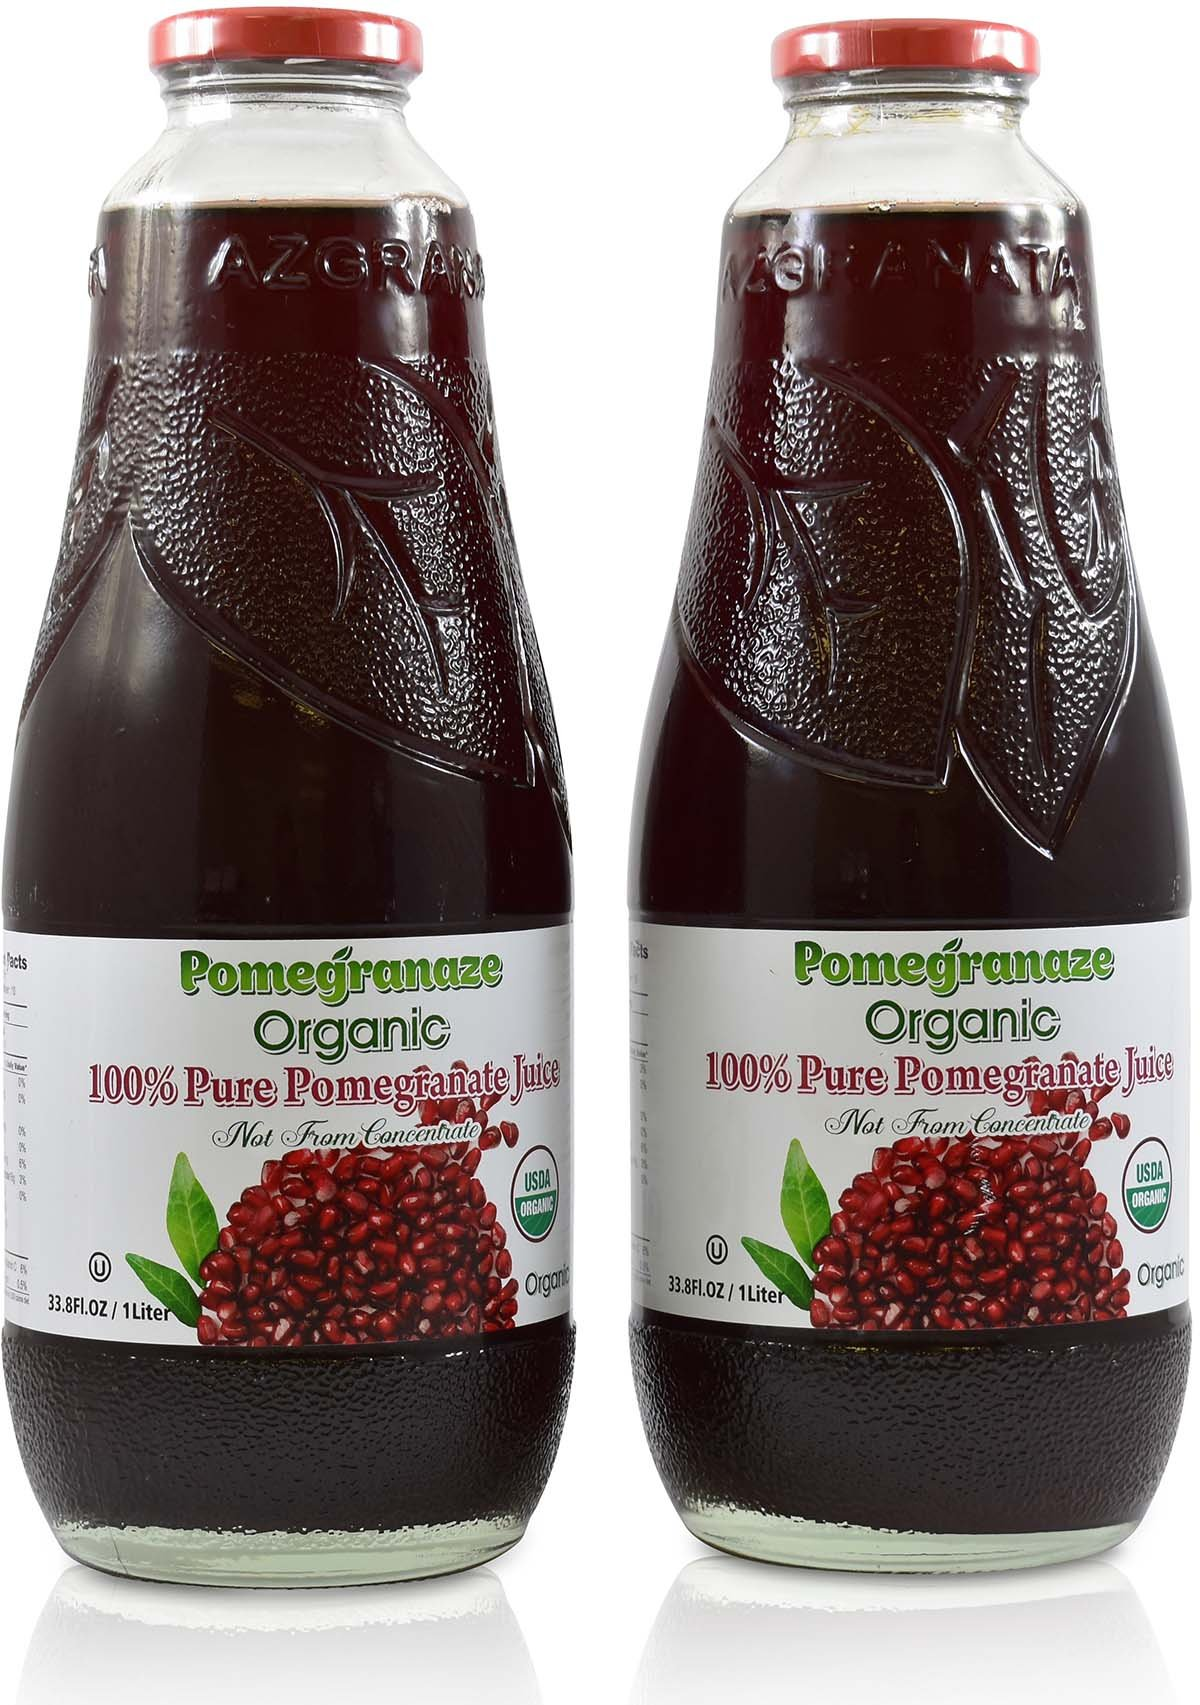 100% Pomegranate Juice - 2 Pack - 33.8 fl oz - USDA Organic Certified - Glass Bottle - No Sugar Added - No Preservatives - Squeezed From Fresh Pomegranates by Blue Ribbon (Image #1)